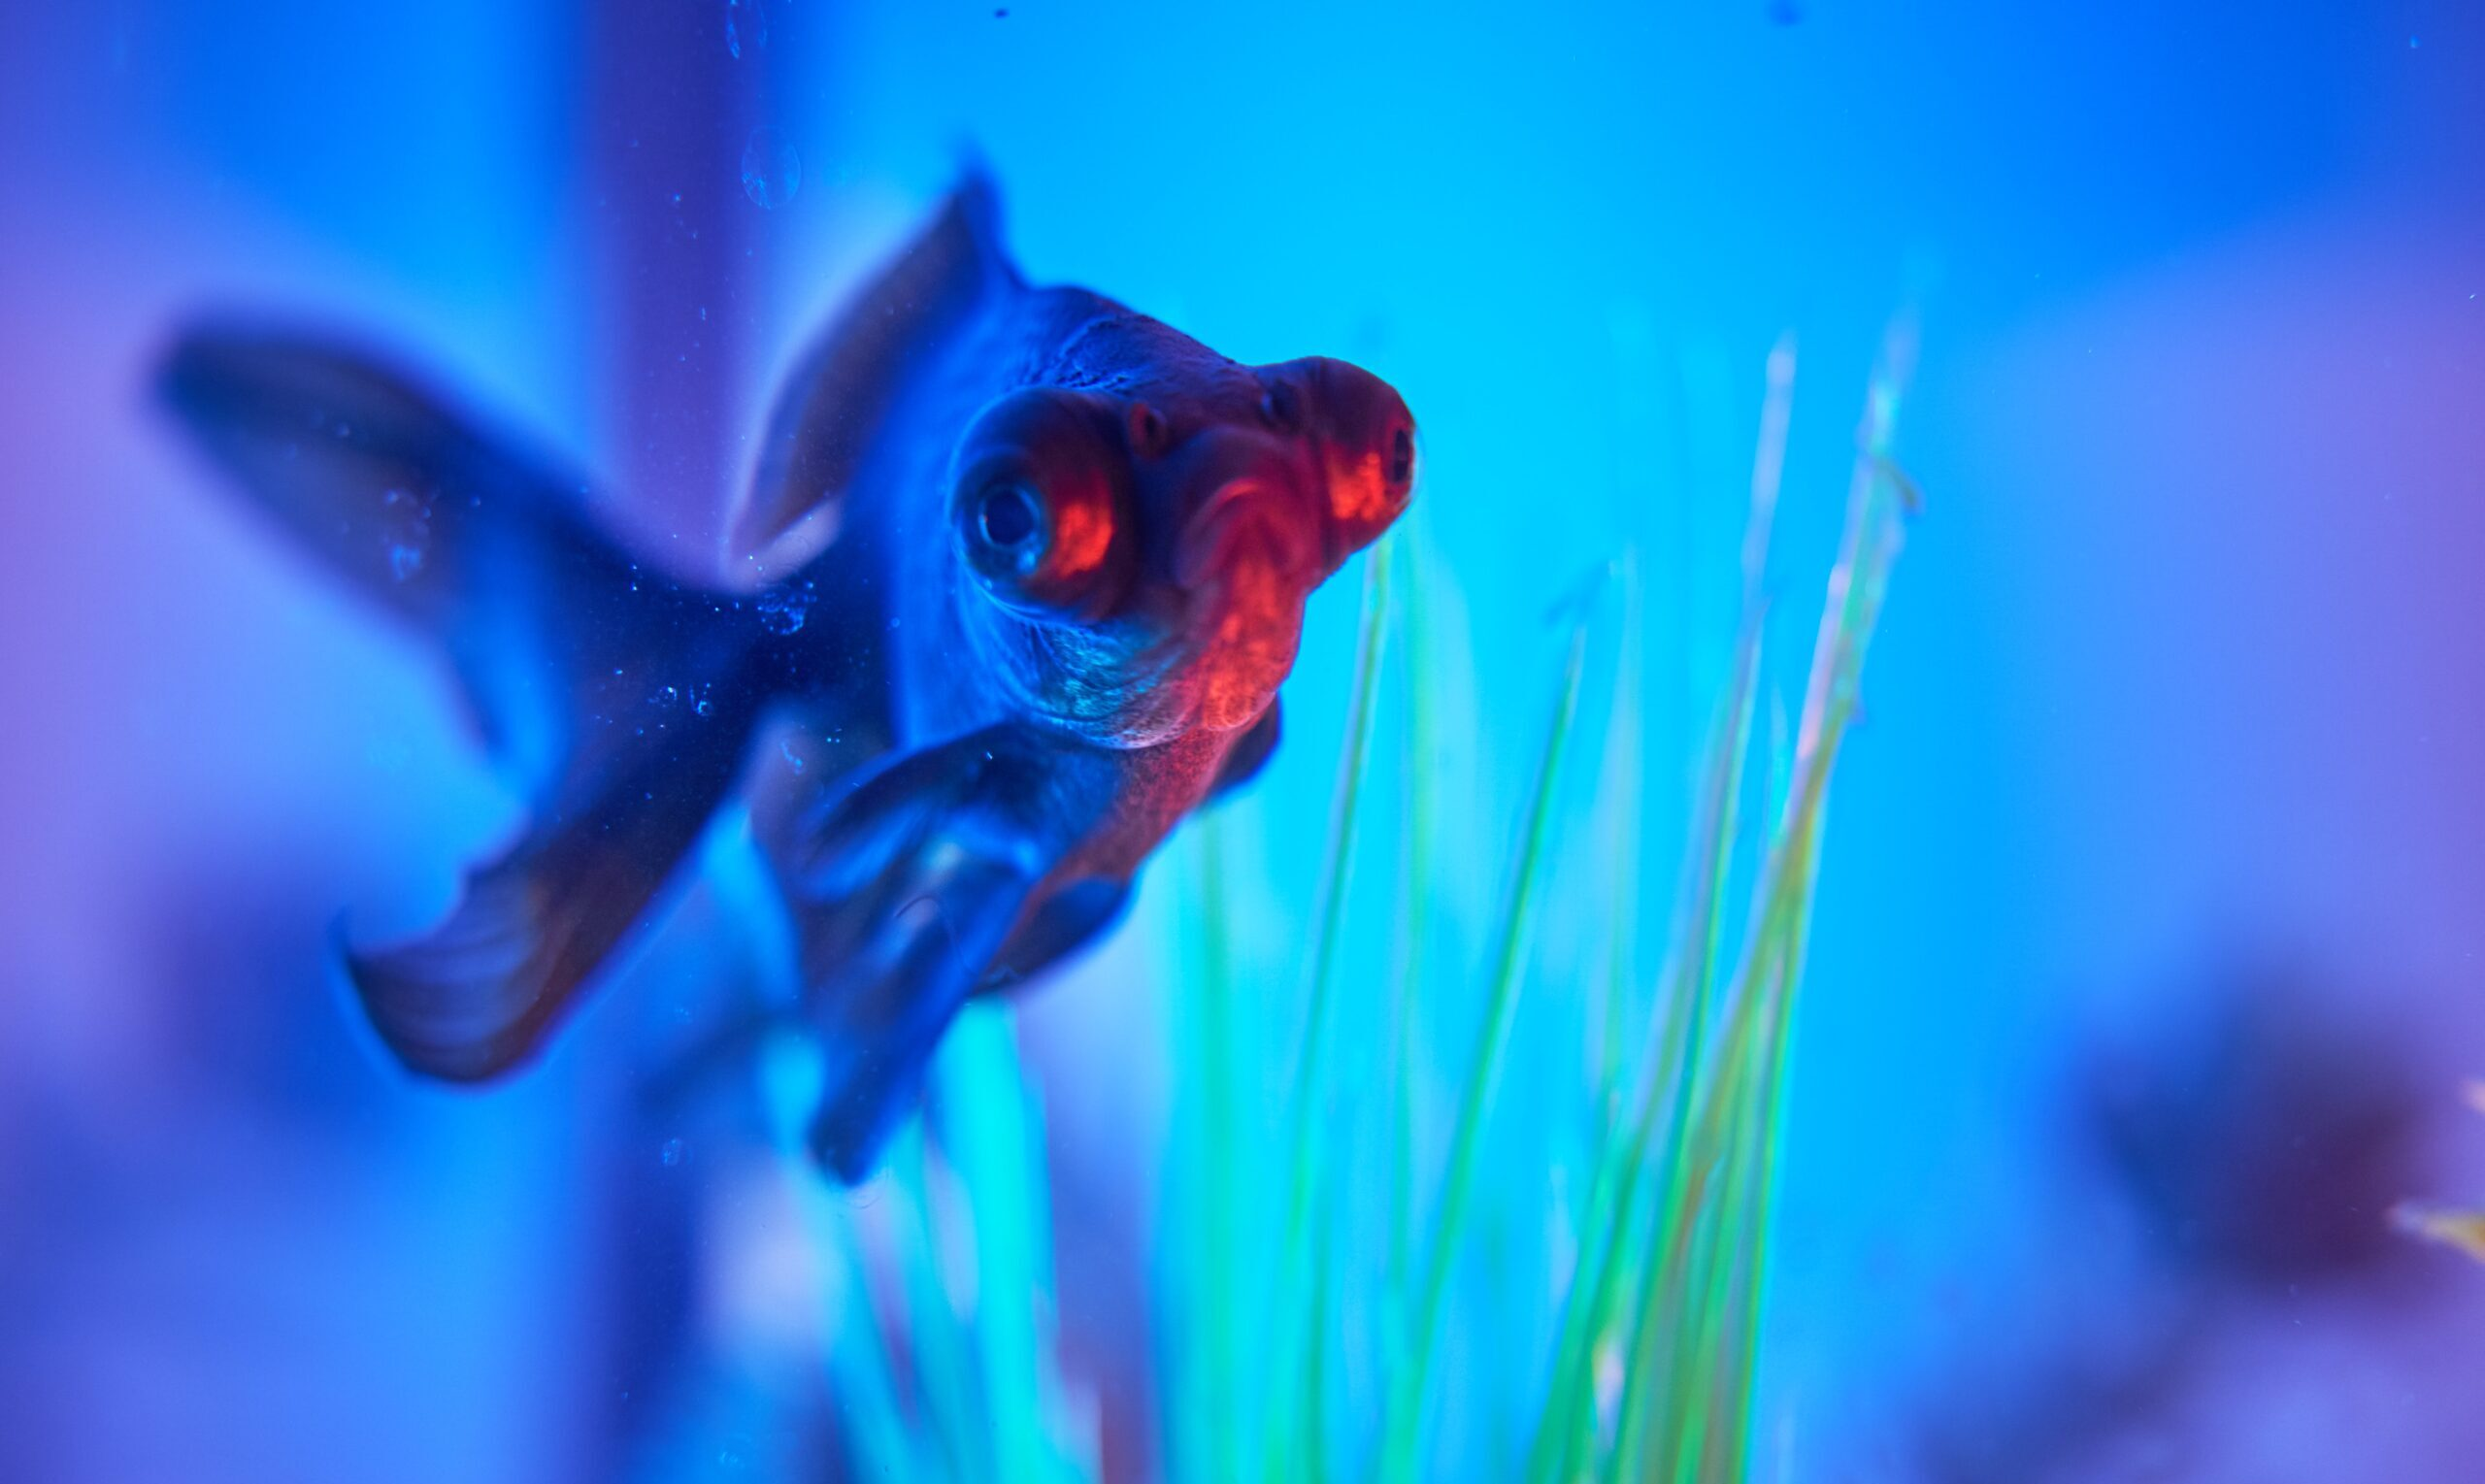 How to place feng shui fish tank the best way?